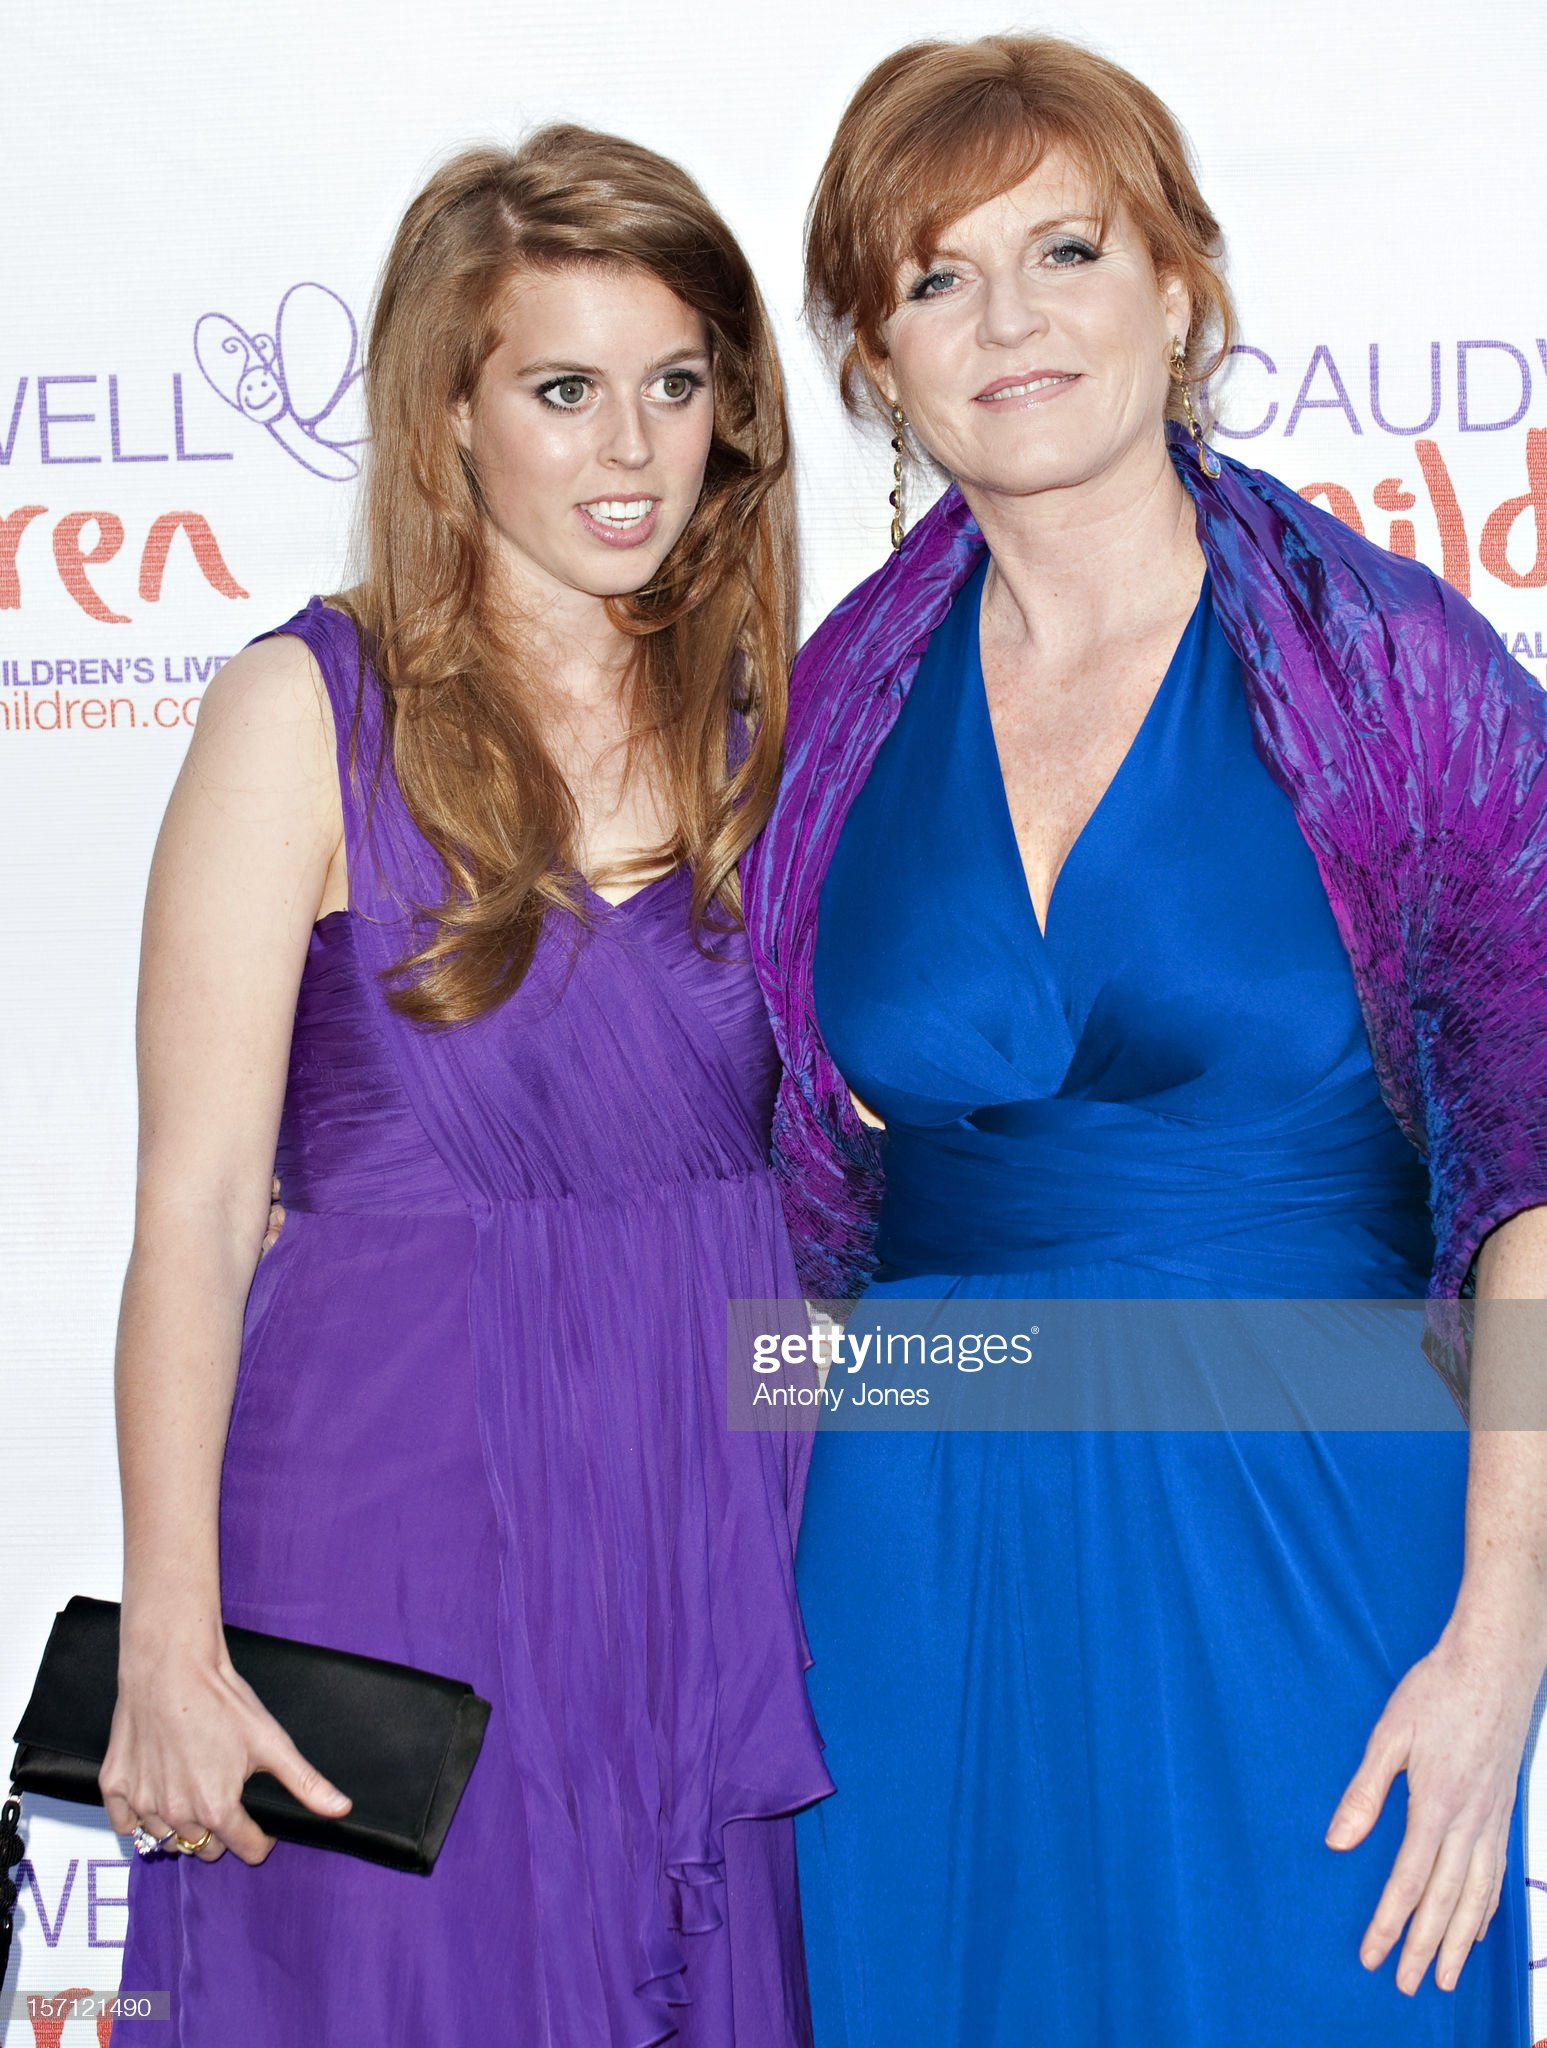 Caudwell Children'S Butterfly Ball - London : News Photo